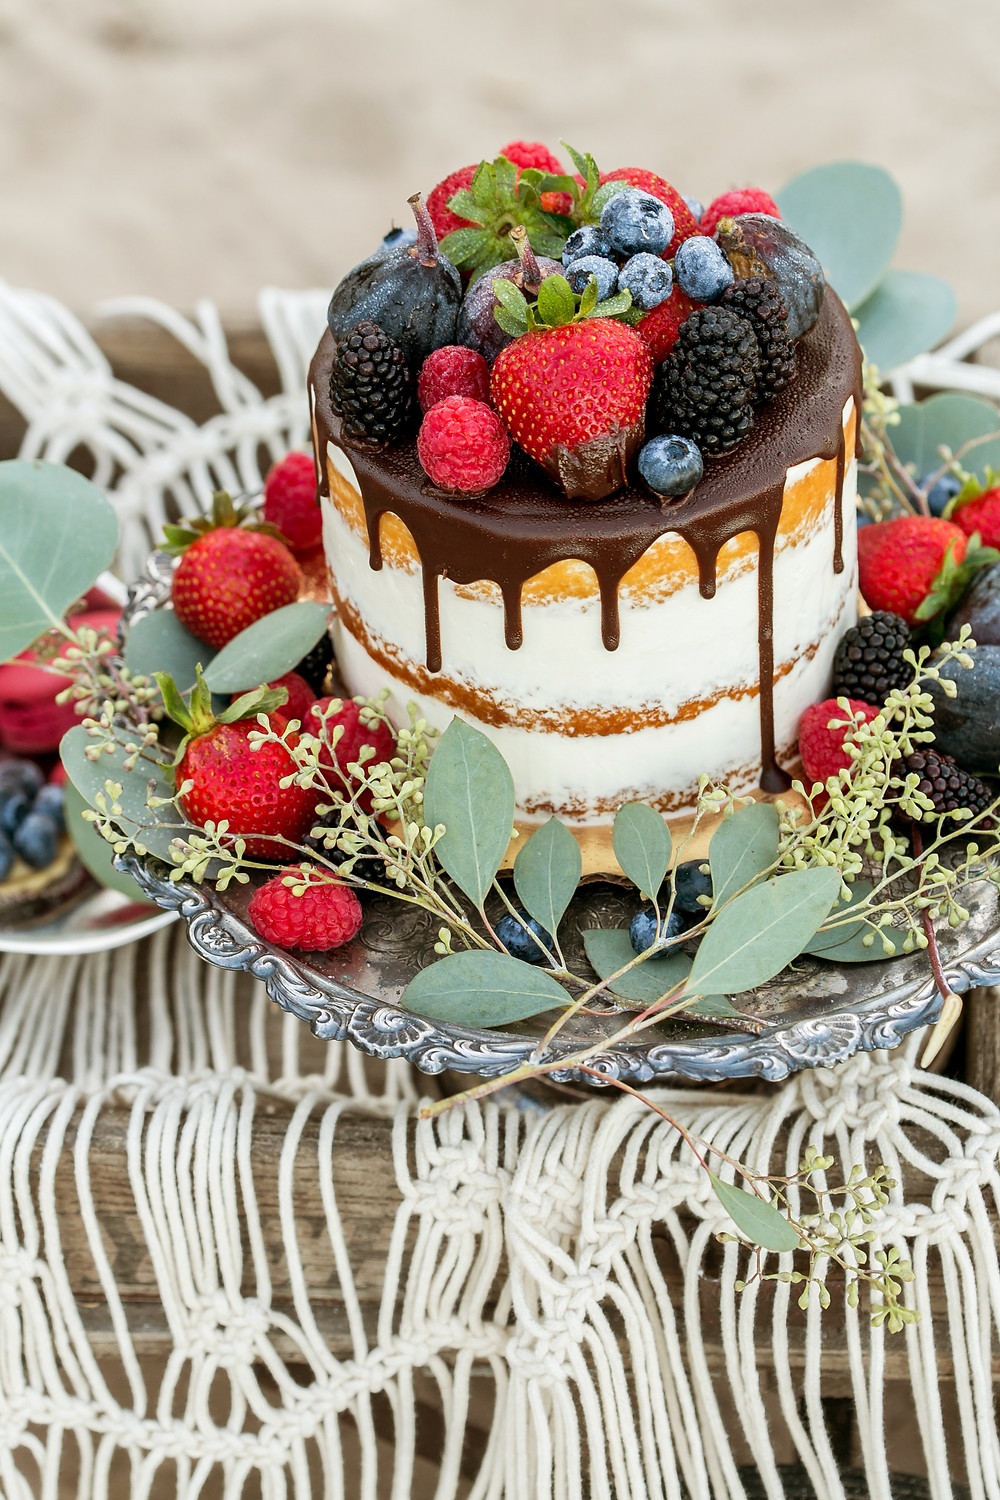 Naked cake dressed with fresh fruit and dripping chocolate for beach picnic celebration